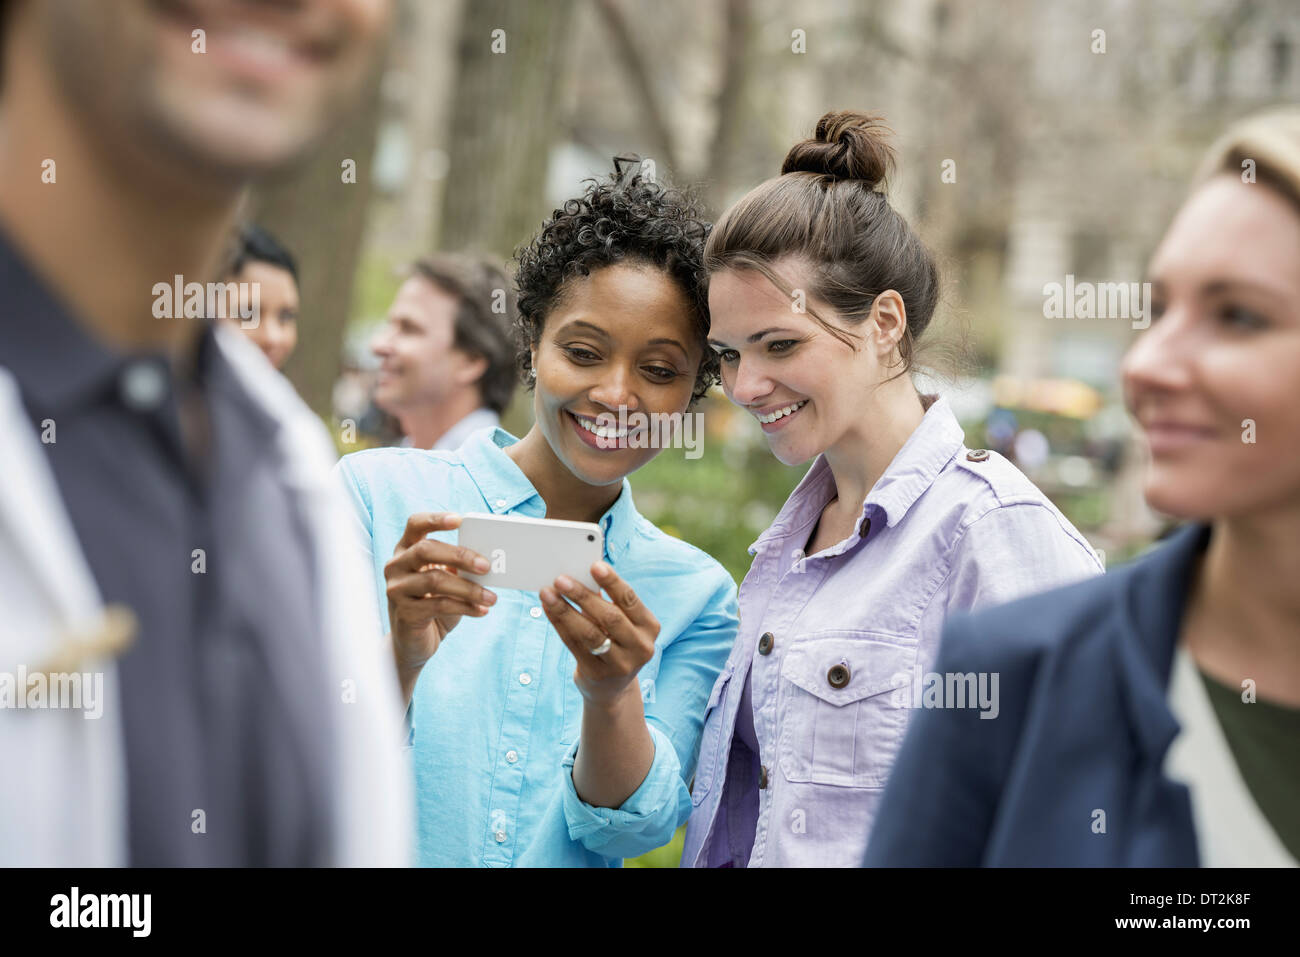 People outdoors in the city spring time New York City park Two women in a group of friends looking at a cell phone and smiling - Stock Image